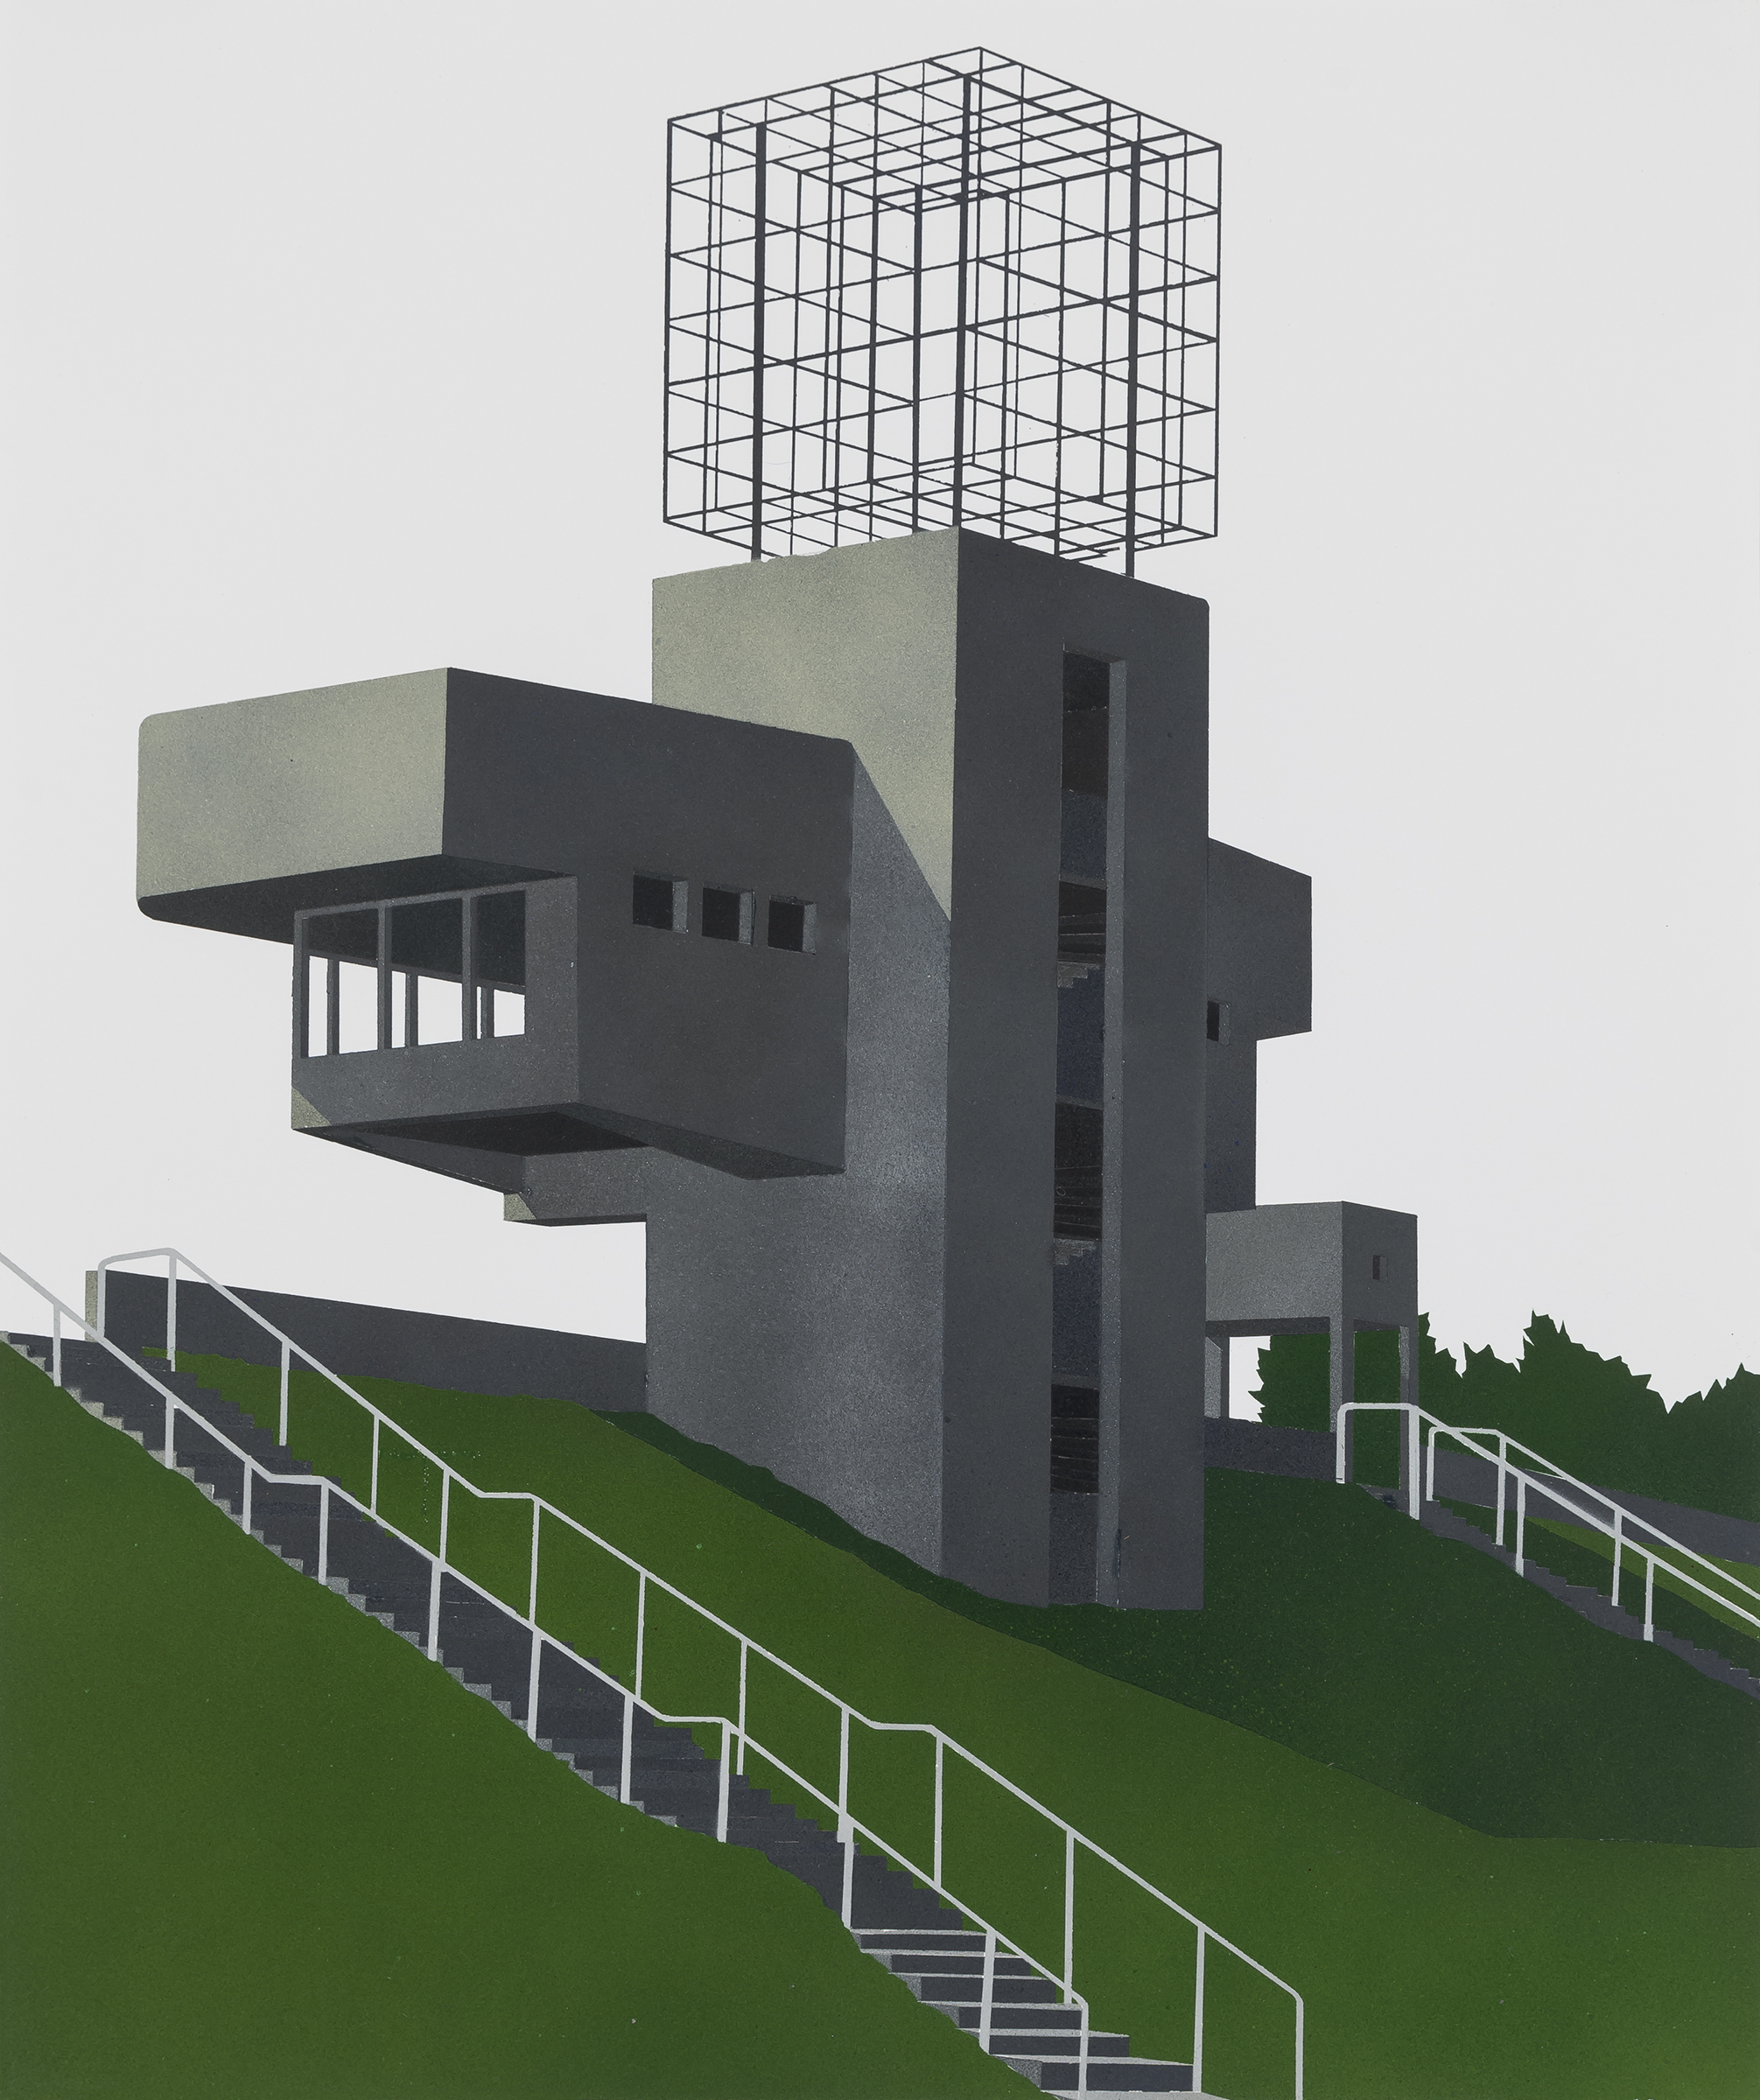 Observation Tower, Lithuania, 2015. Acrylic on paper 16.5 x 13.5 inches